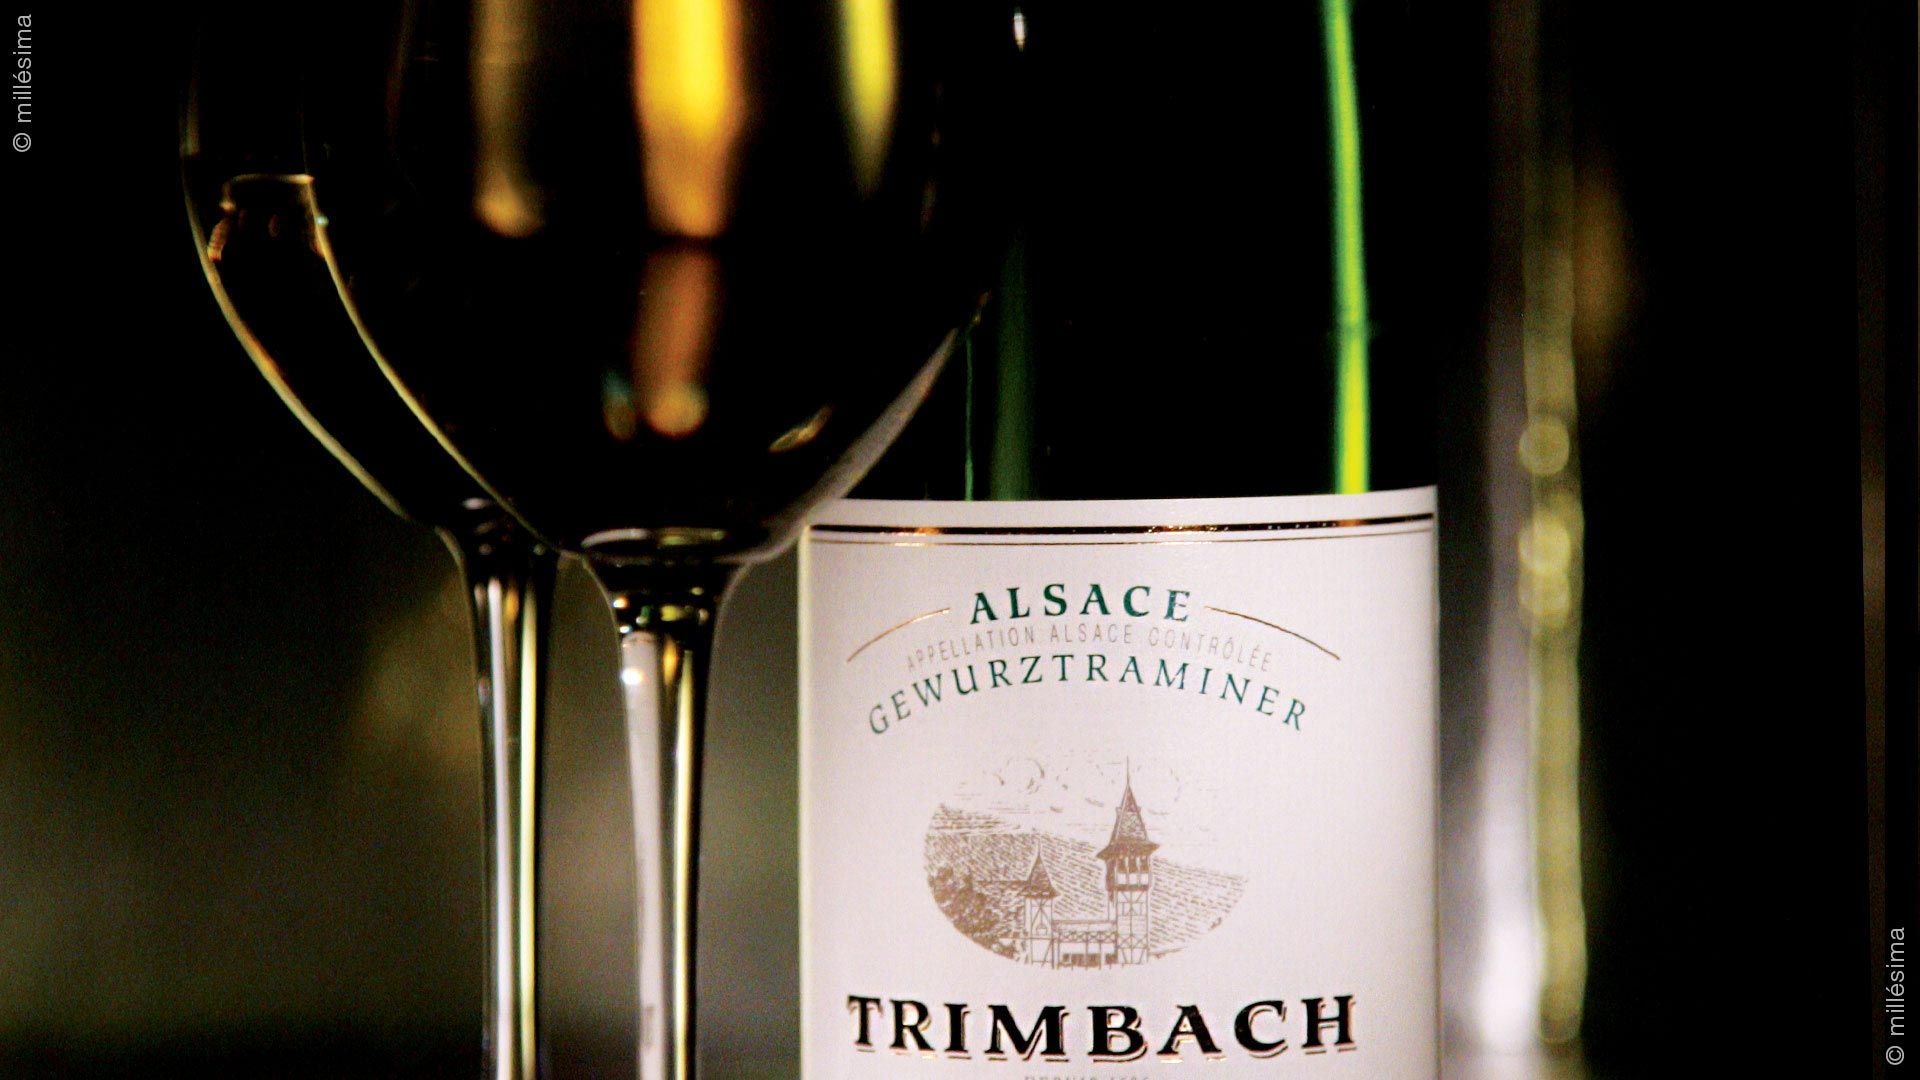 Maison Trimbach : Gewurztraminer Vendanges tardives 2008 - 1